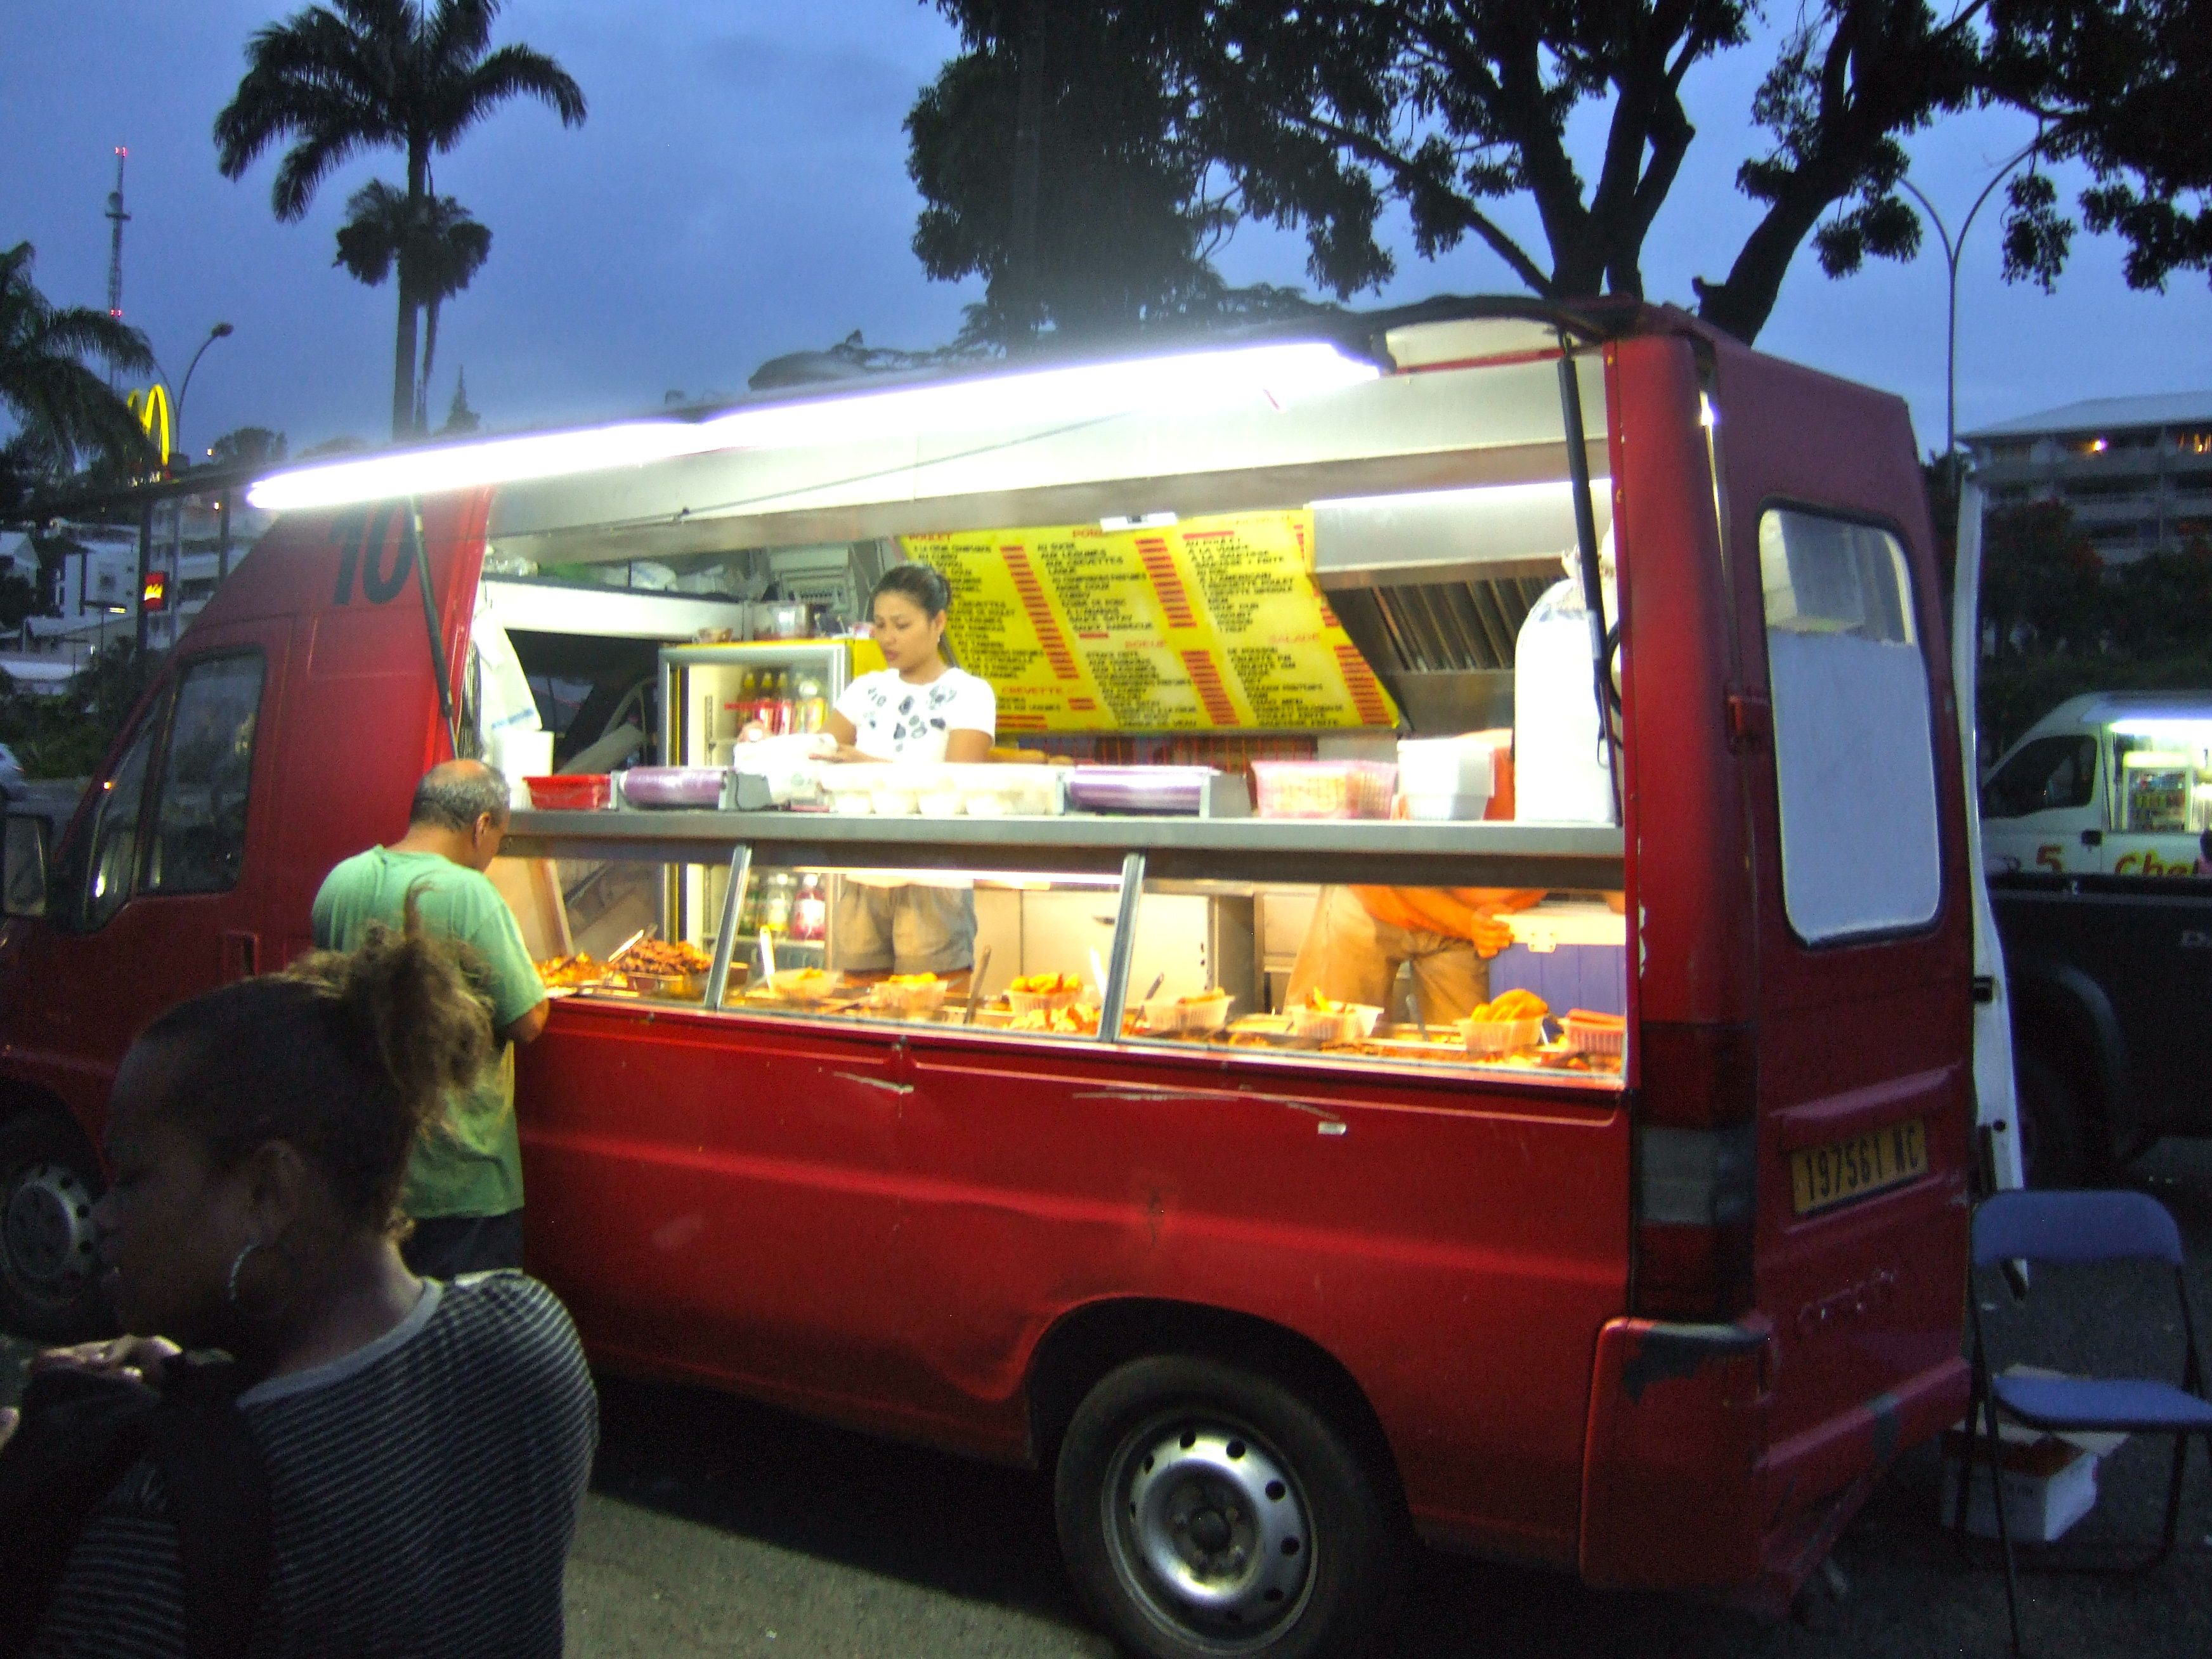 Chinese Food Sizes File:chinese-food Truck in